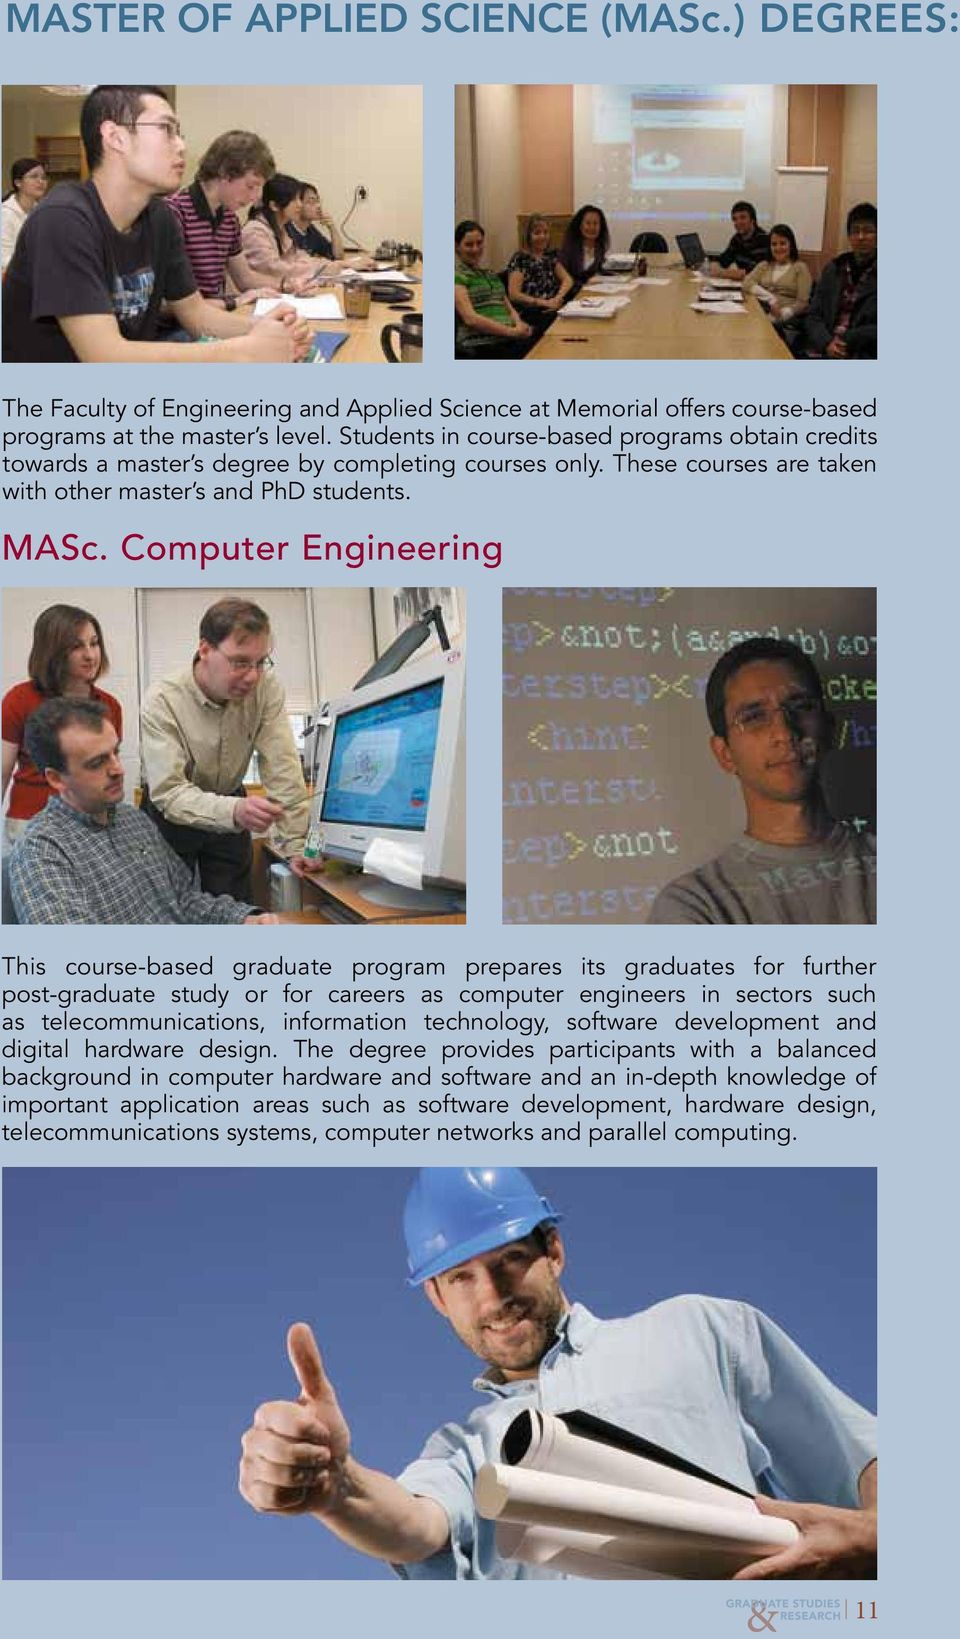 Computer Engineering This course-based graduate program prepares its graduates for further post-graduate study or for careers as computer engineers in sectors such as telecommunications, information